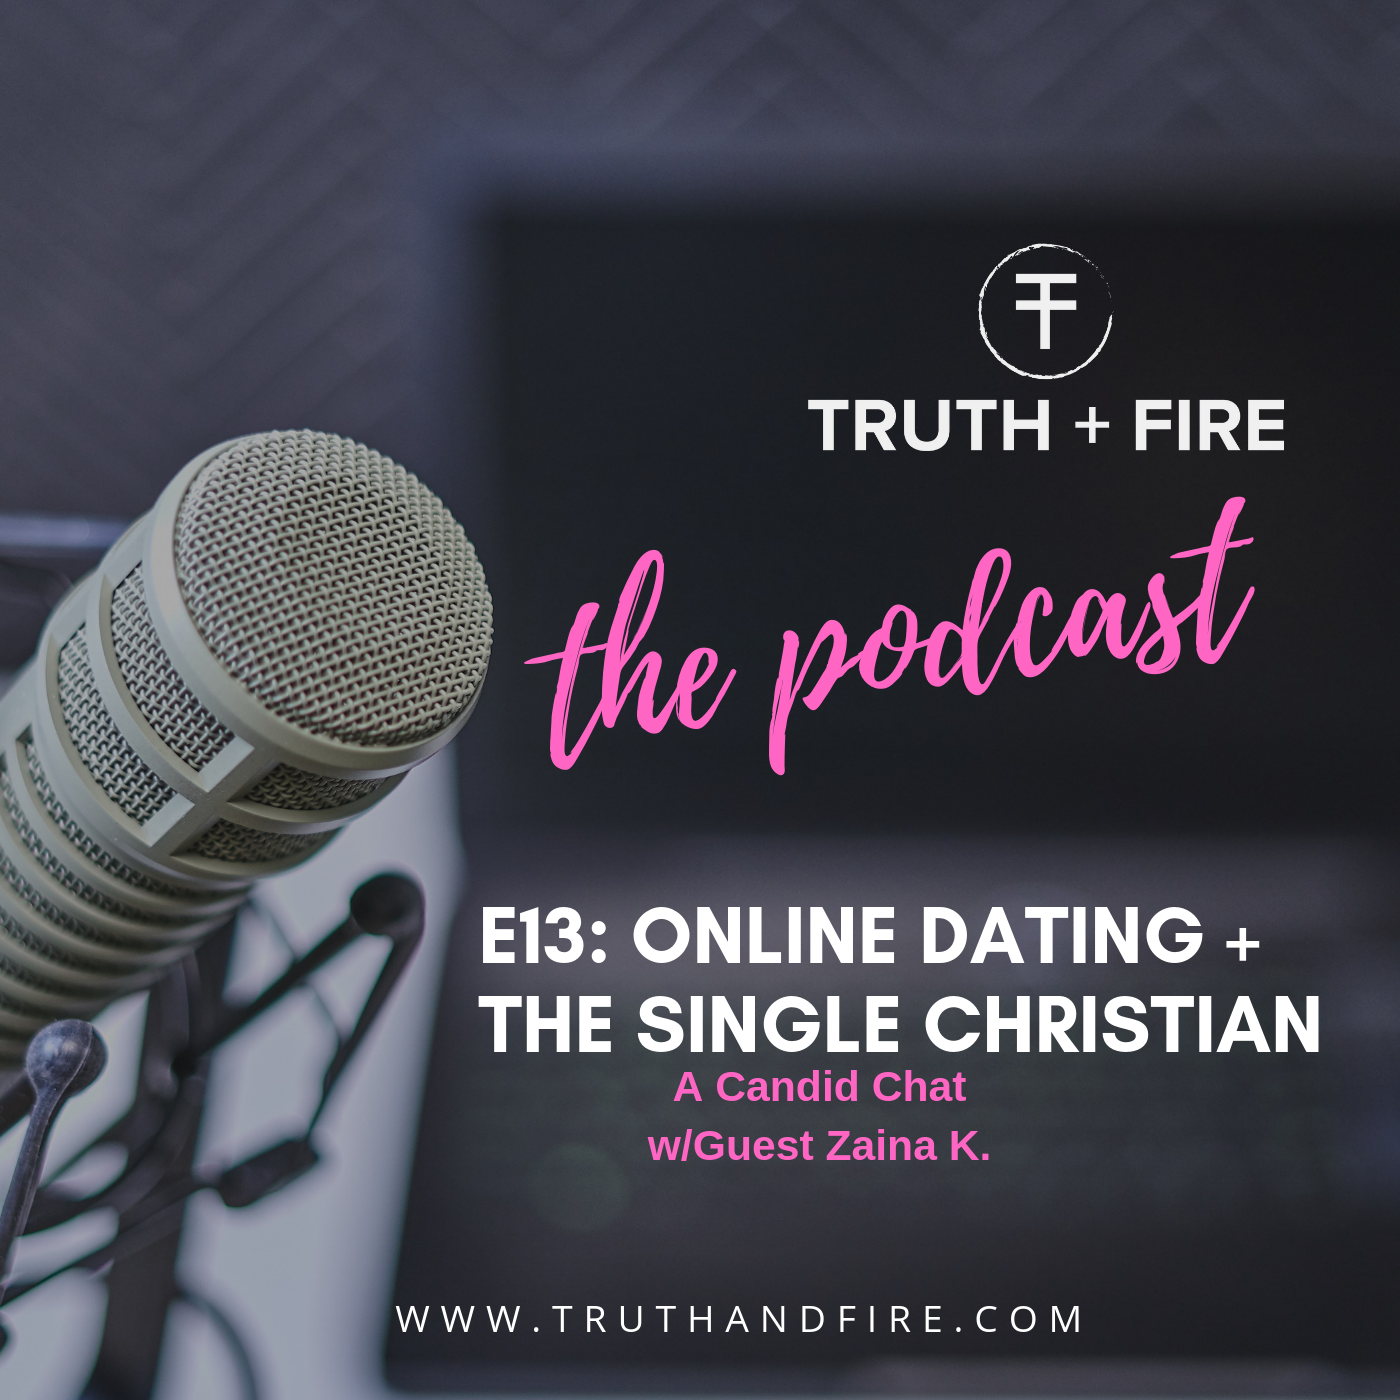 E13: Online Dating + the Single Christian